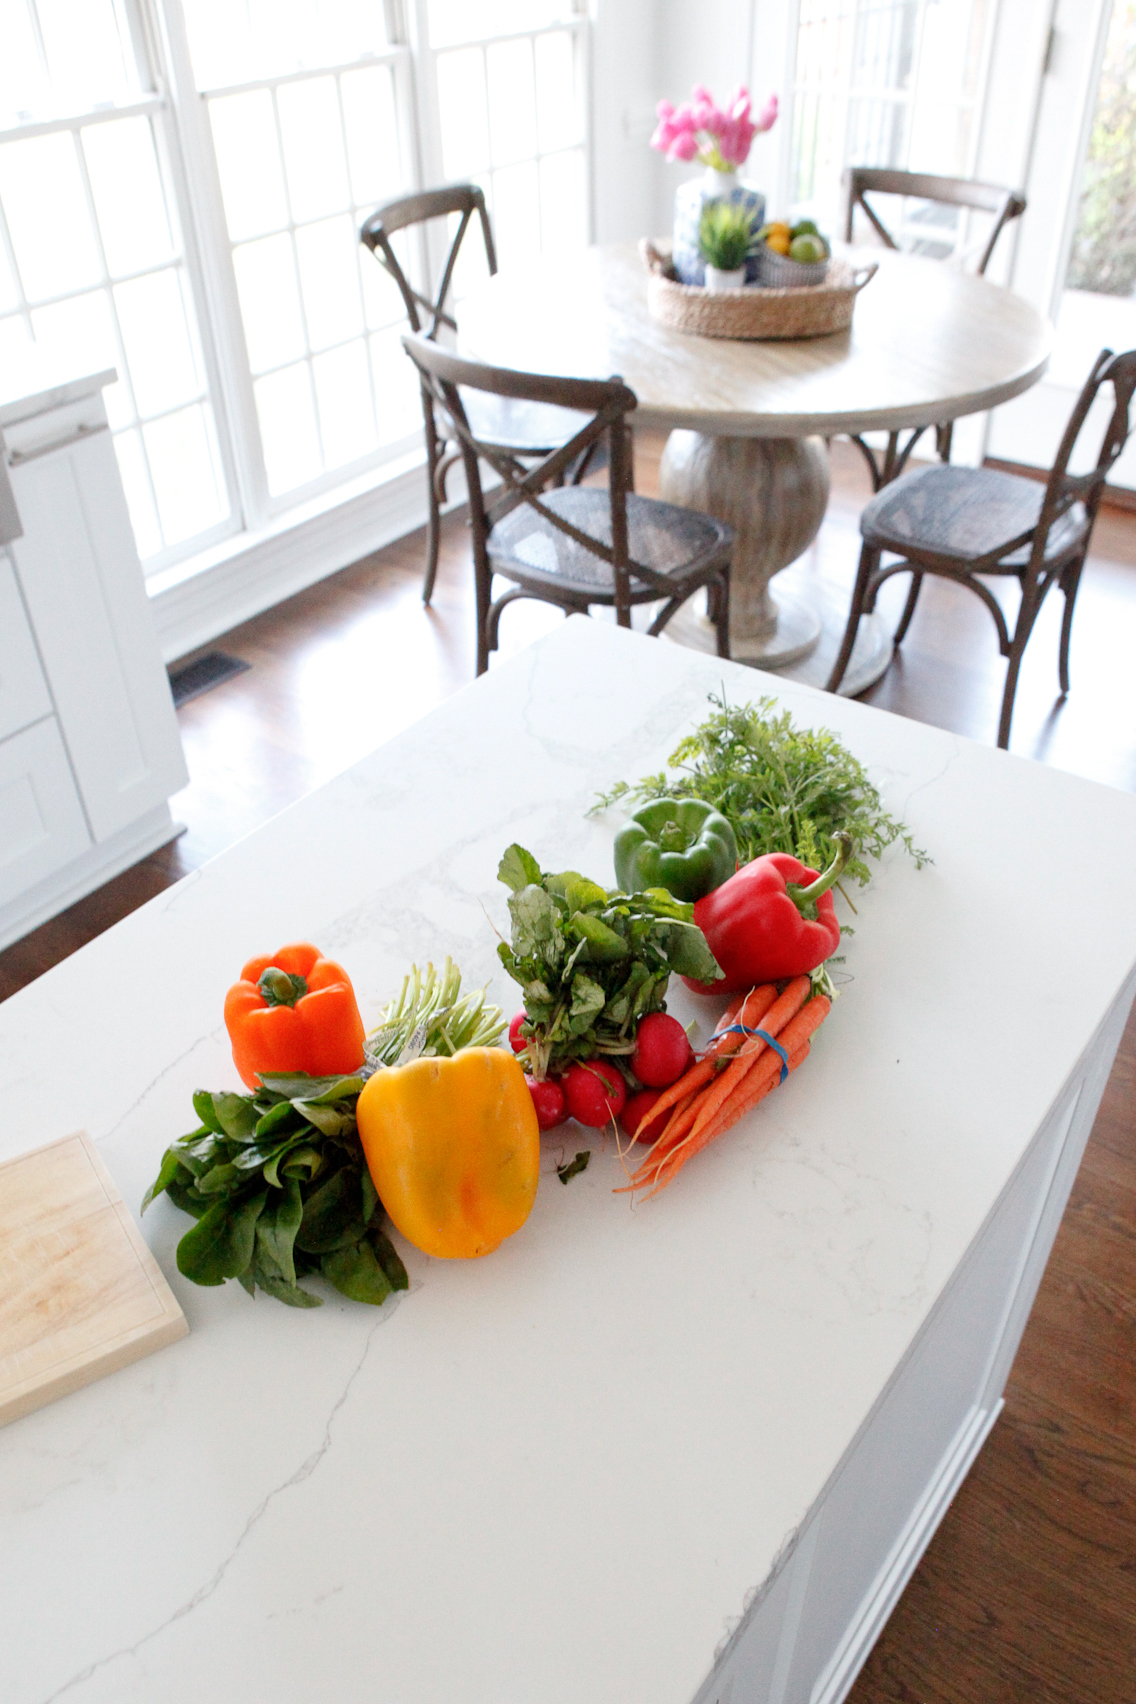 vegetables on counter top